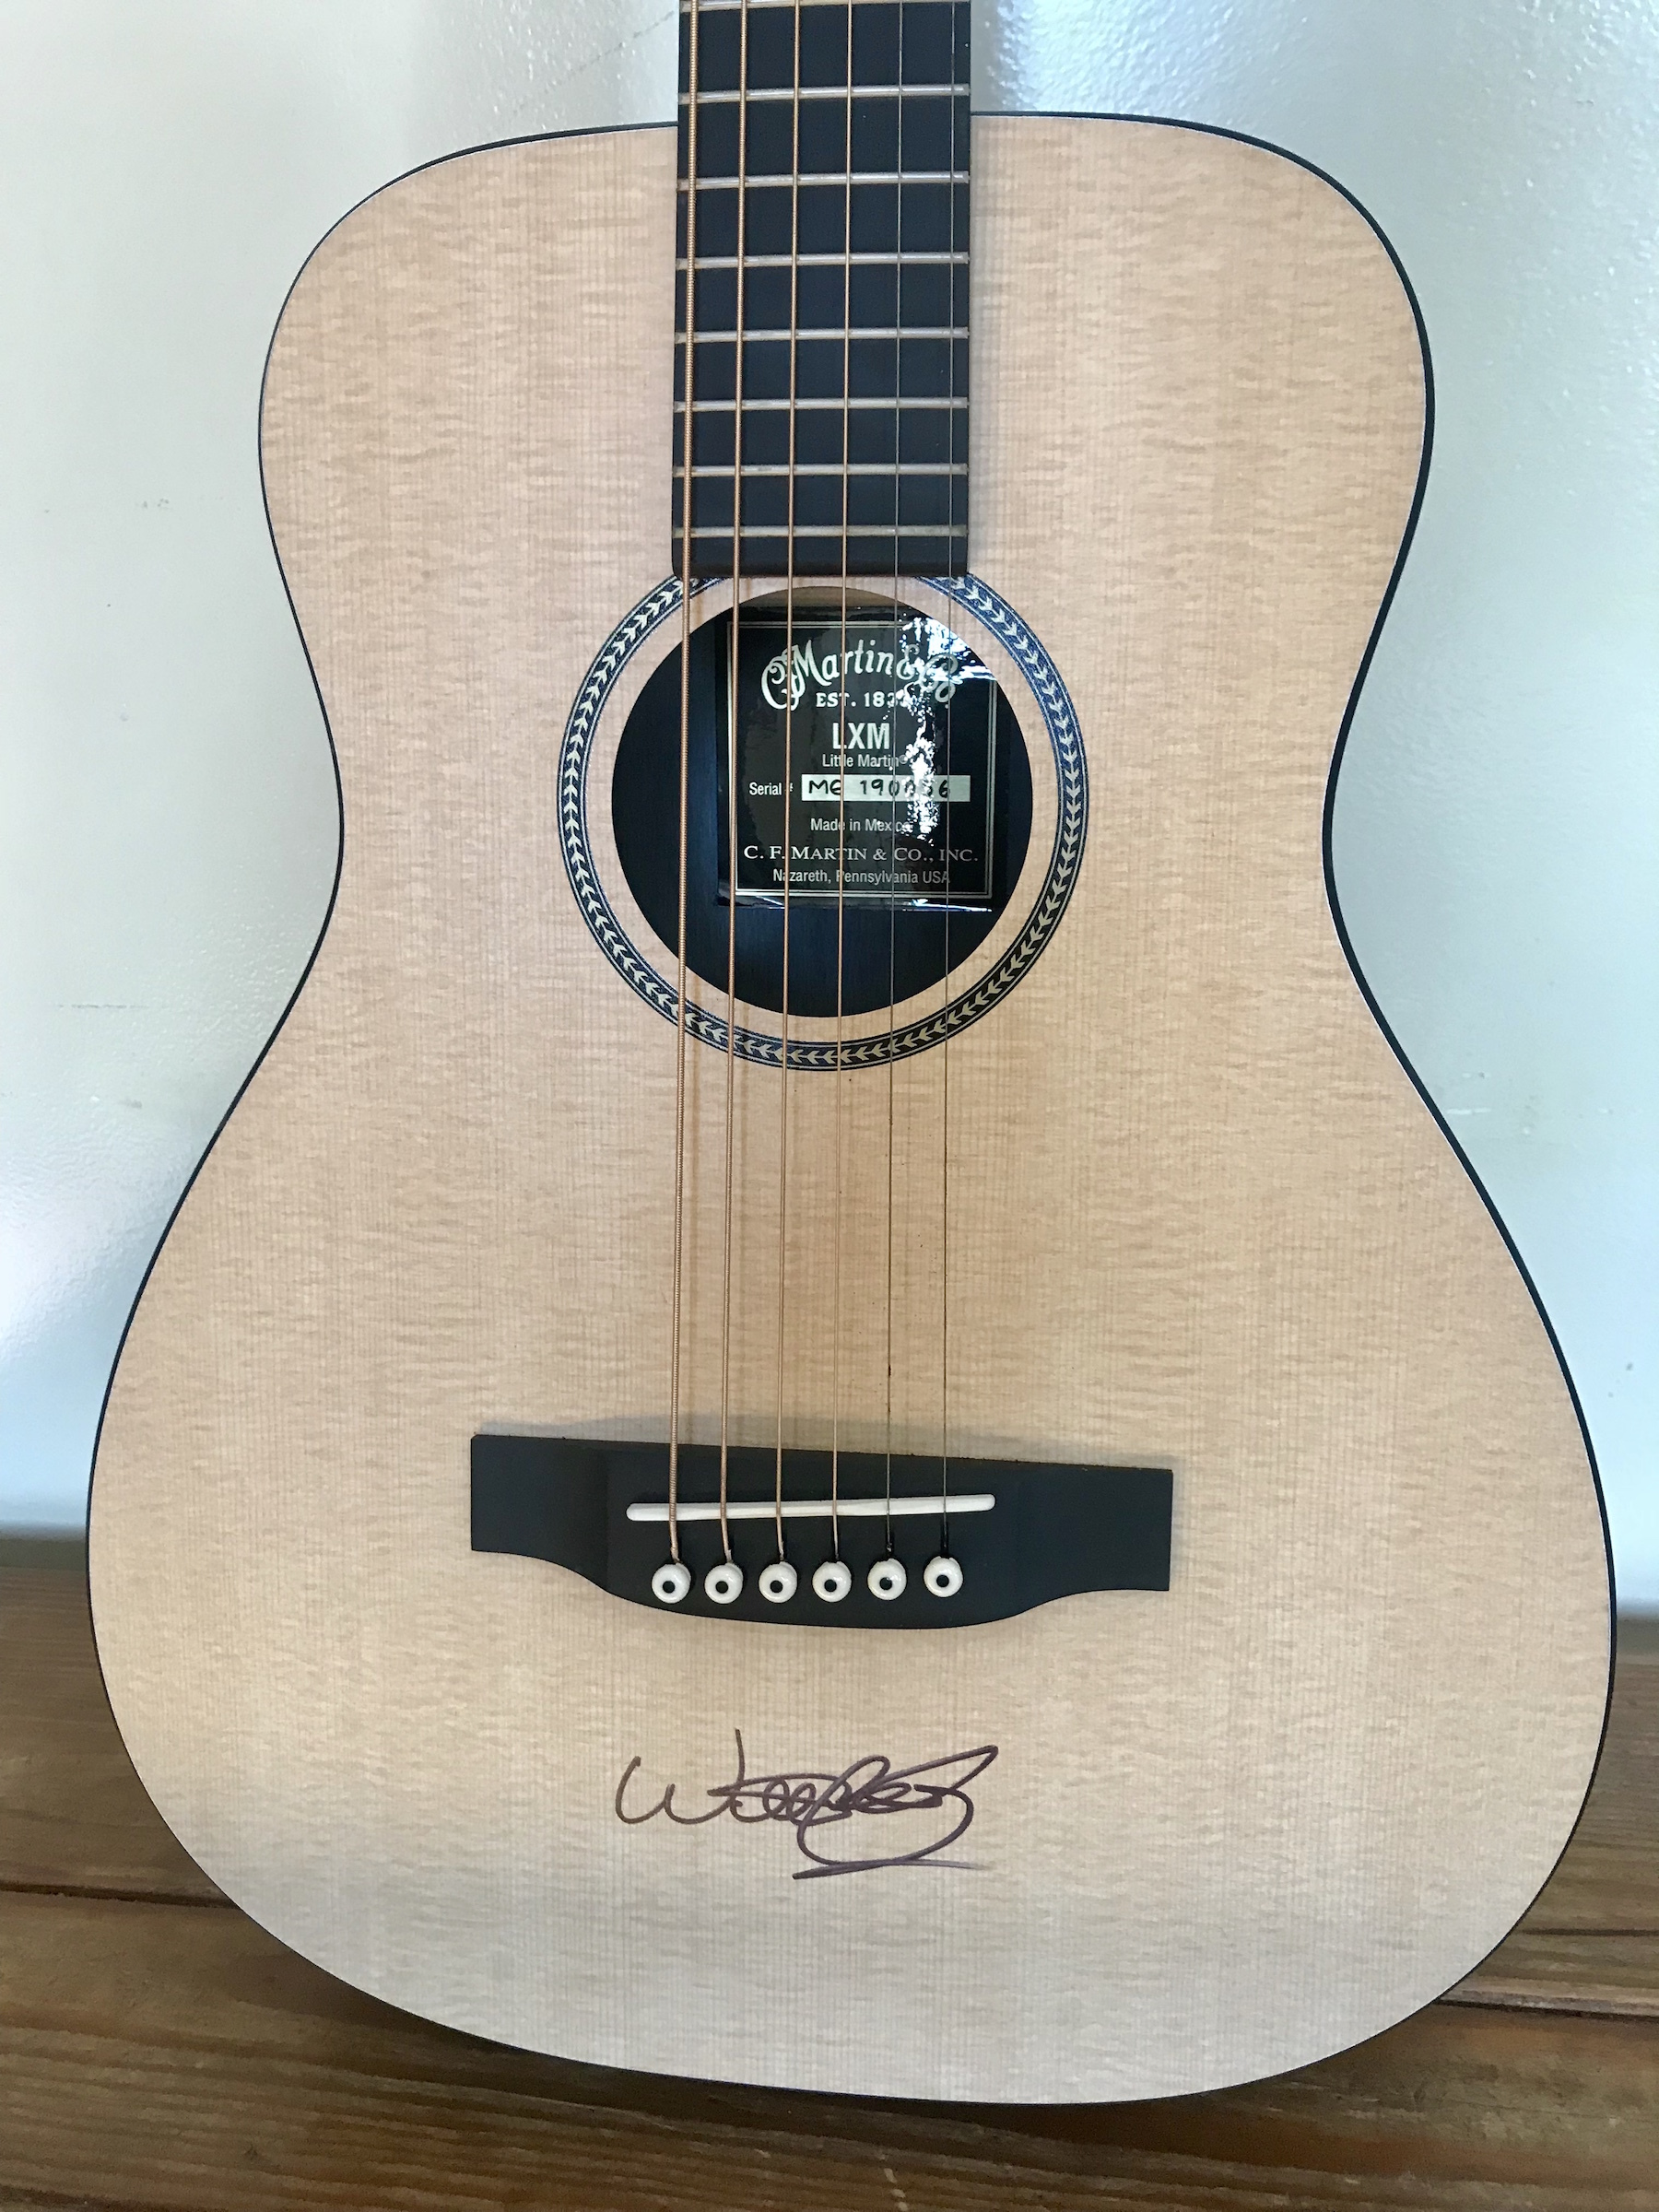 charitybuzz signed willie nelson acoustic little martin guitar lot 1447800. Black Bedroom Furniture Sets. Home Design Ideas